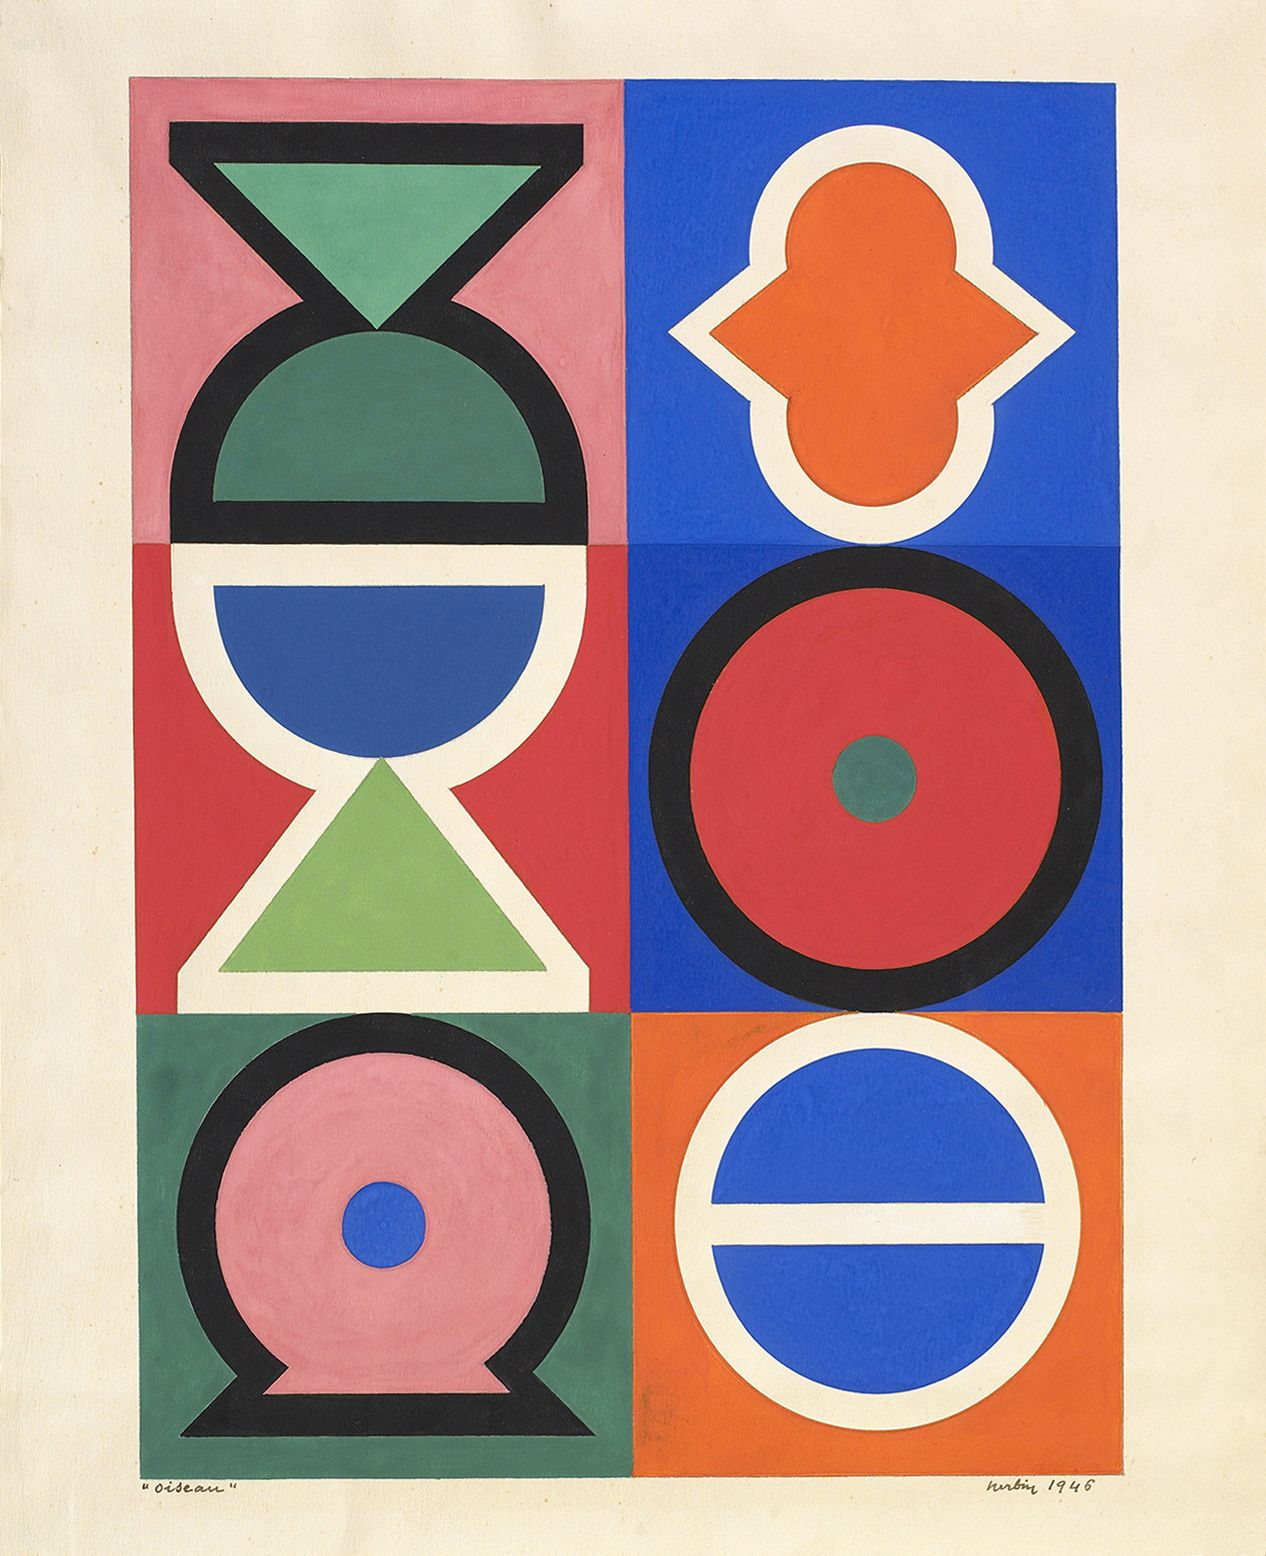 Auguste Herbin, Oiseau, 1946, Gouache on paper 12 3/4 x 9 1/4 inches